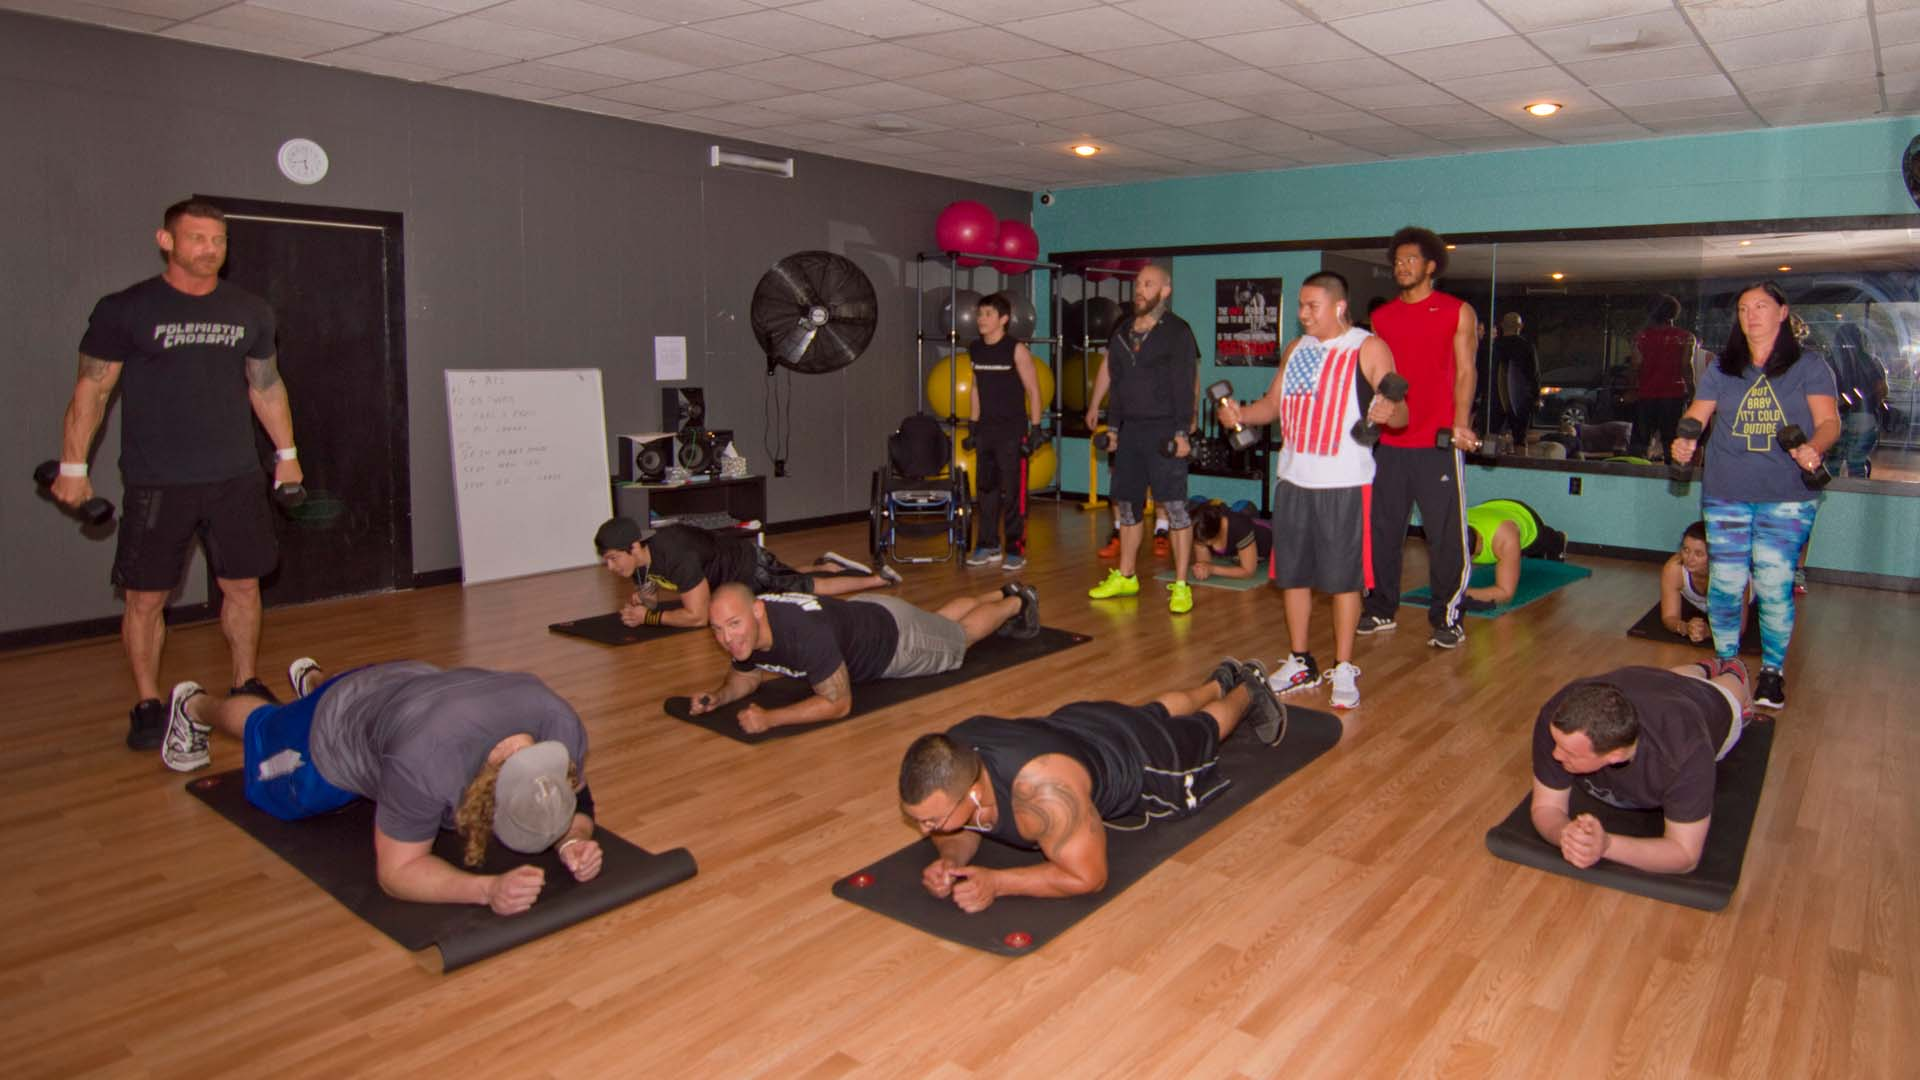 Some people lay in the prone position on the floor, while others perform a standing bicep curl at Cody's Boot Camp Class